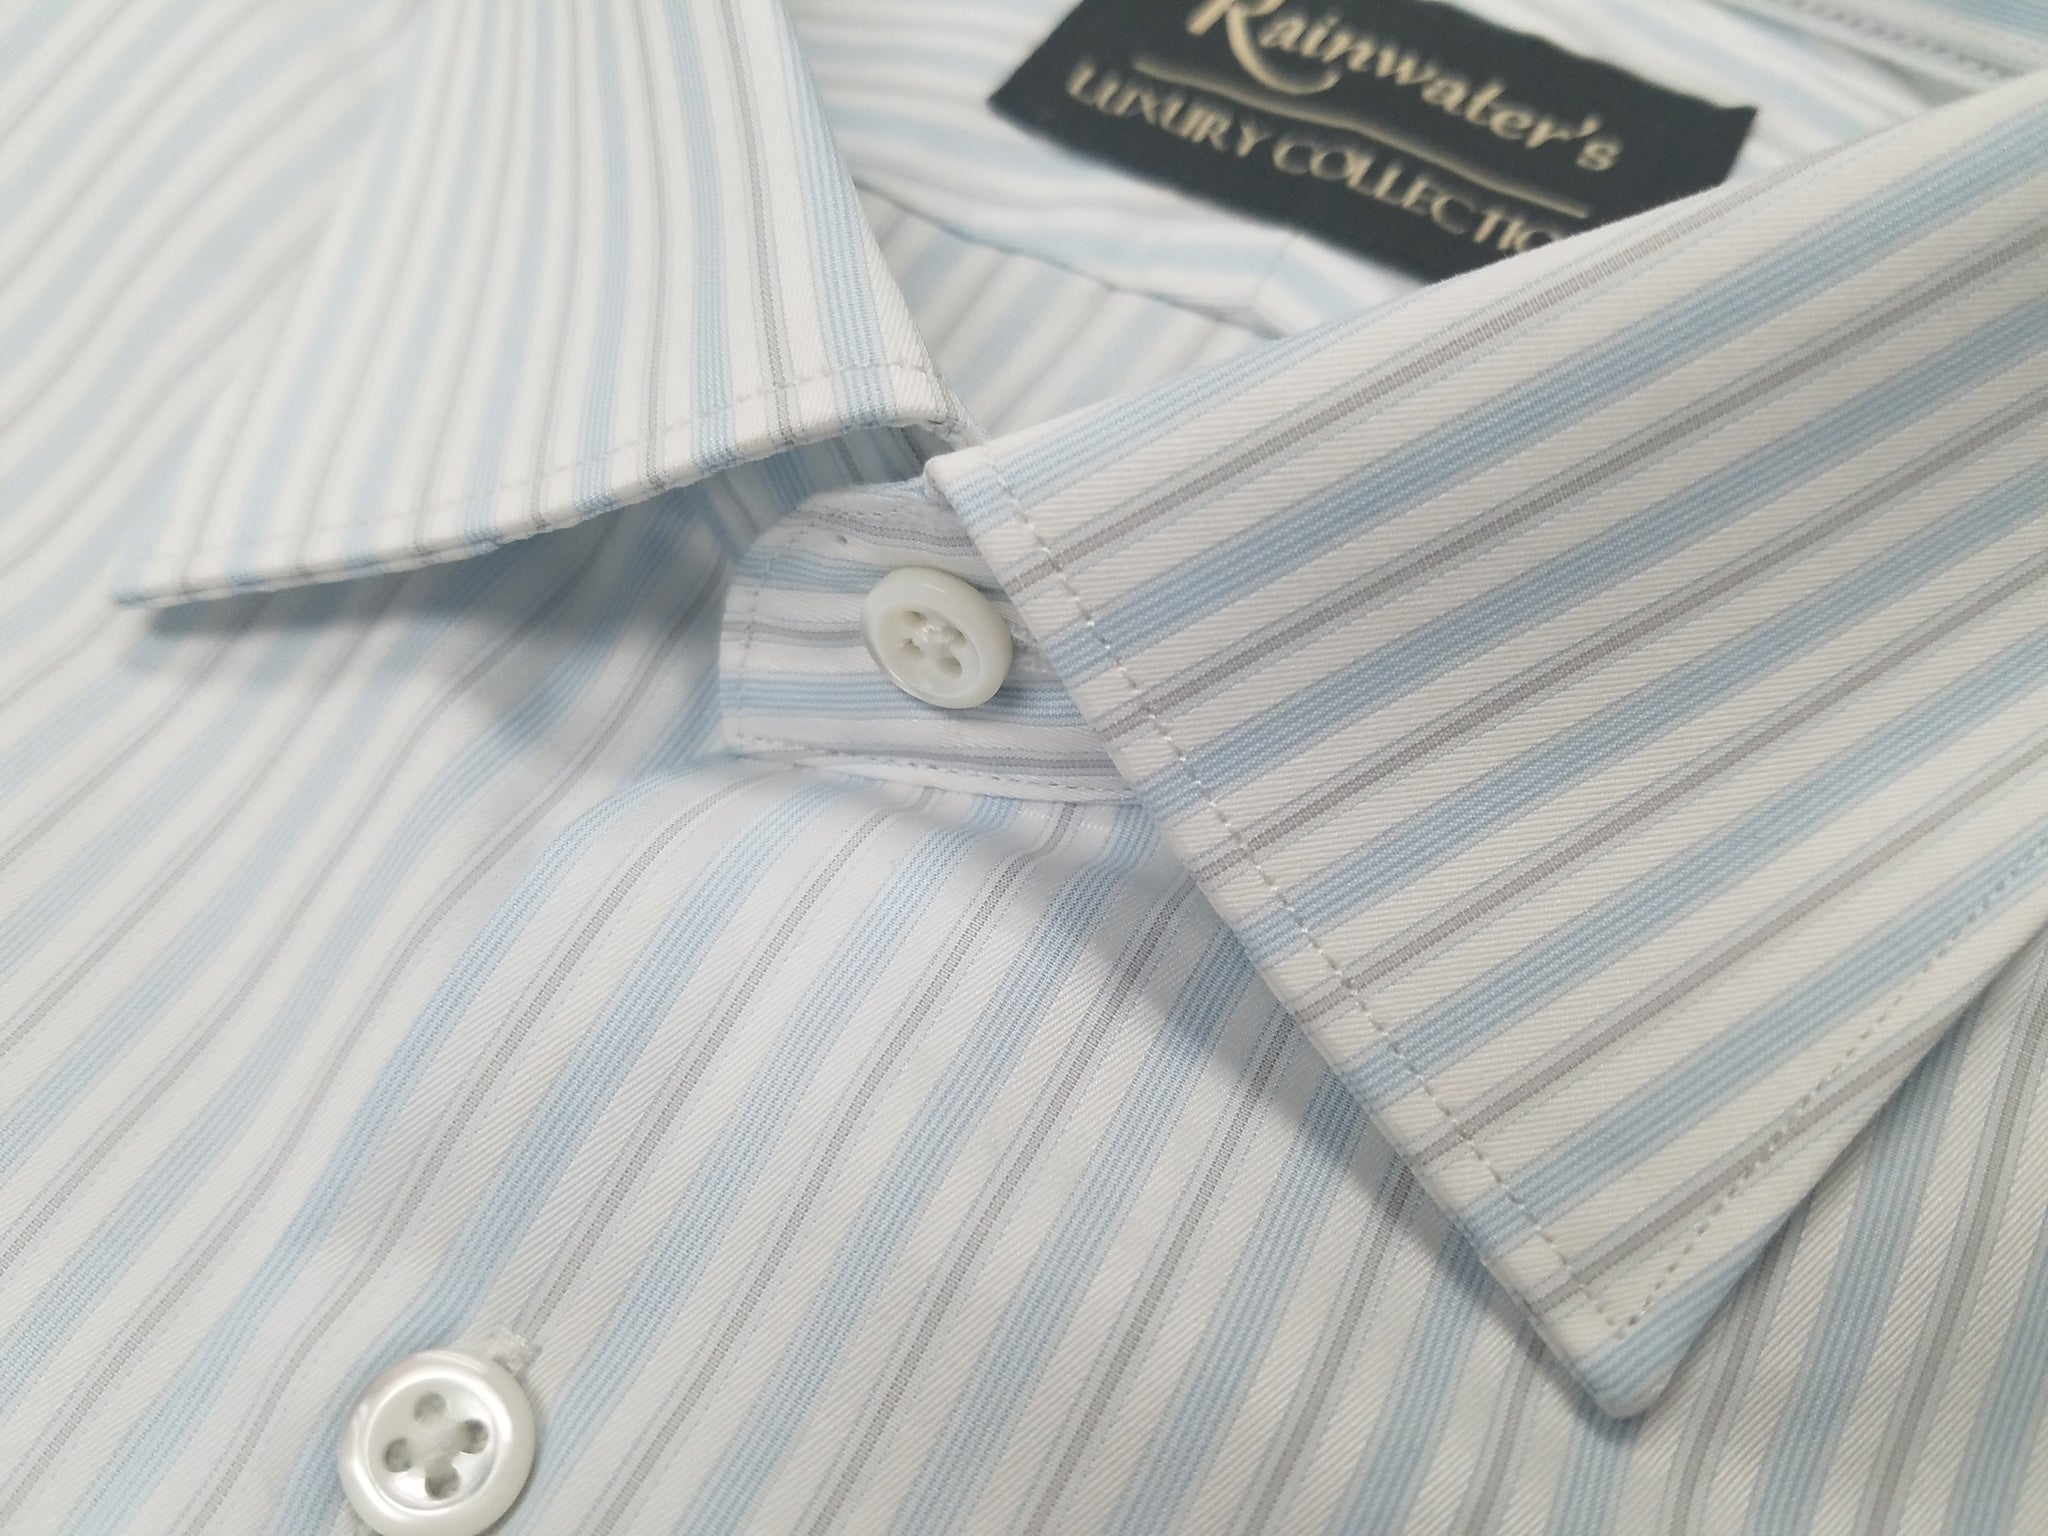 Rainwater's Luxury Collection White and Blue Stripe Dress Shirt - Rainwater's Men's Clothing and Tuxedo Rental